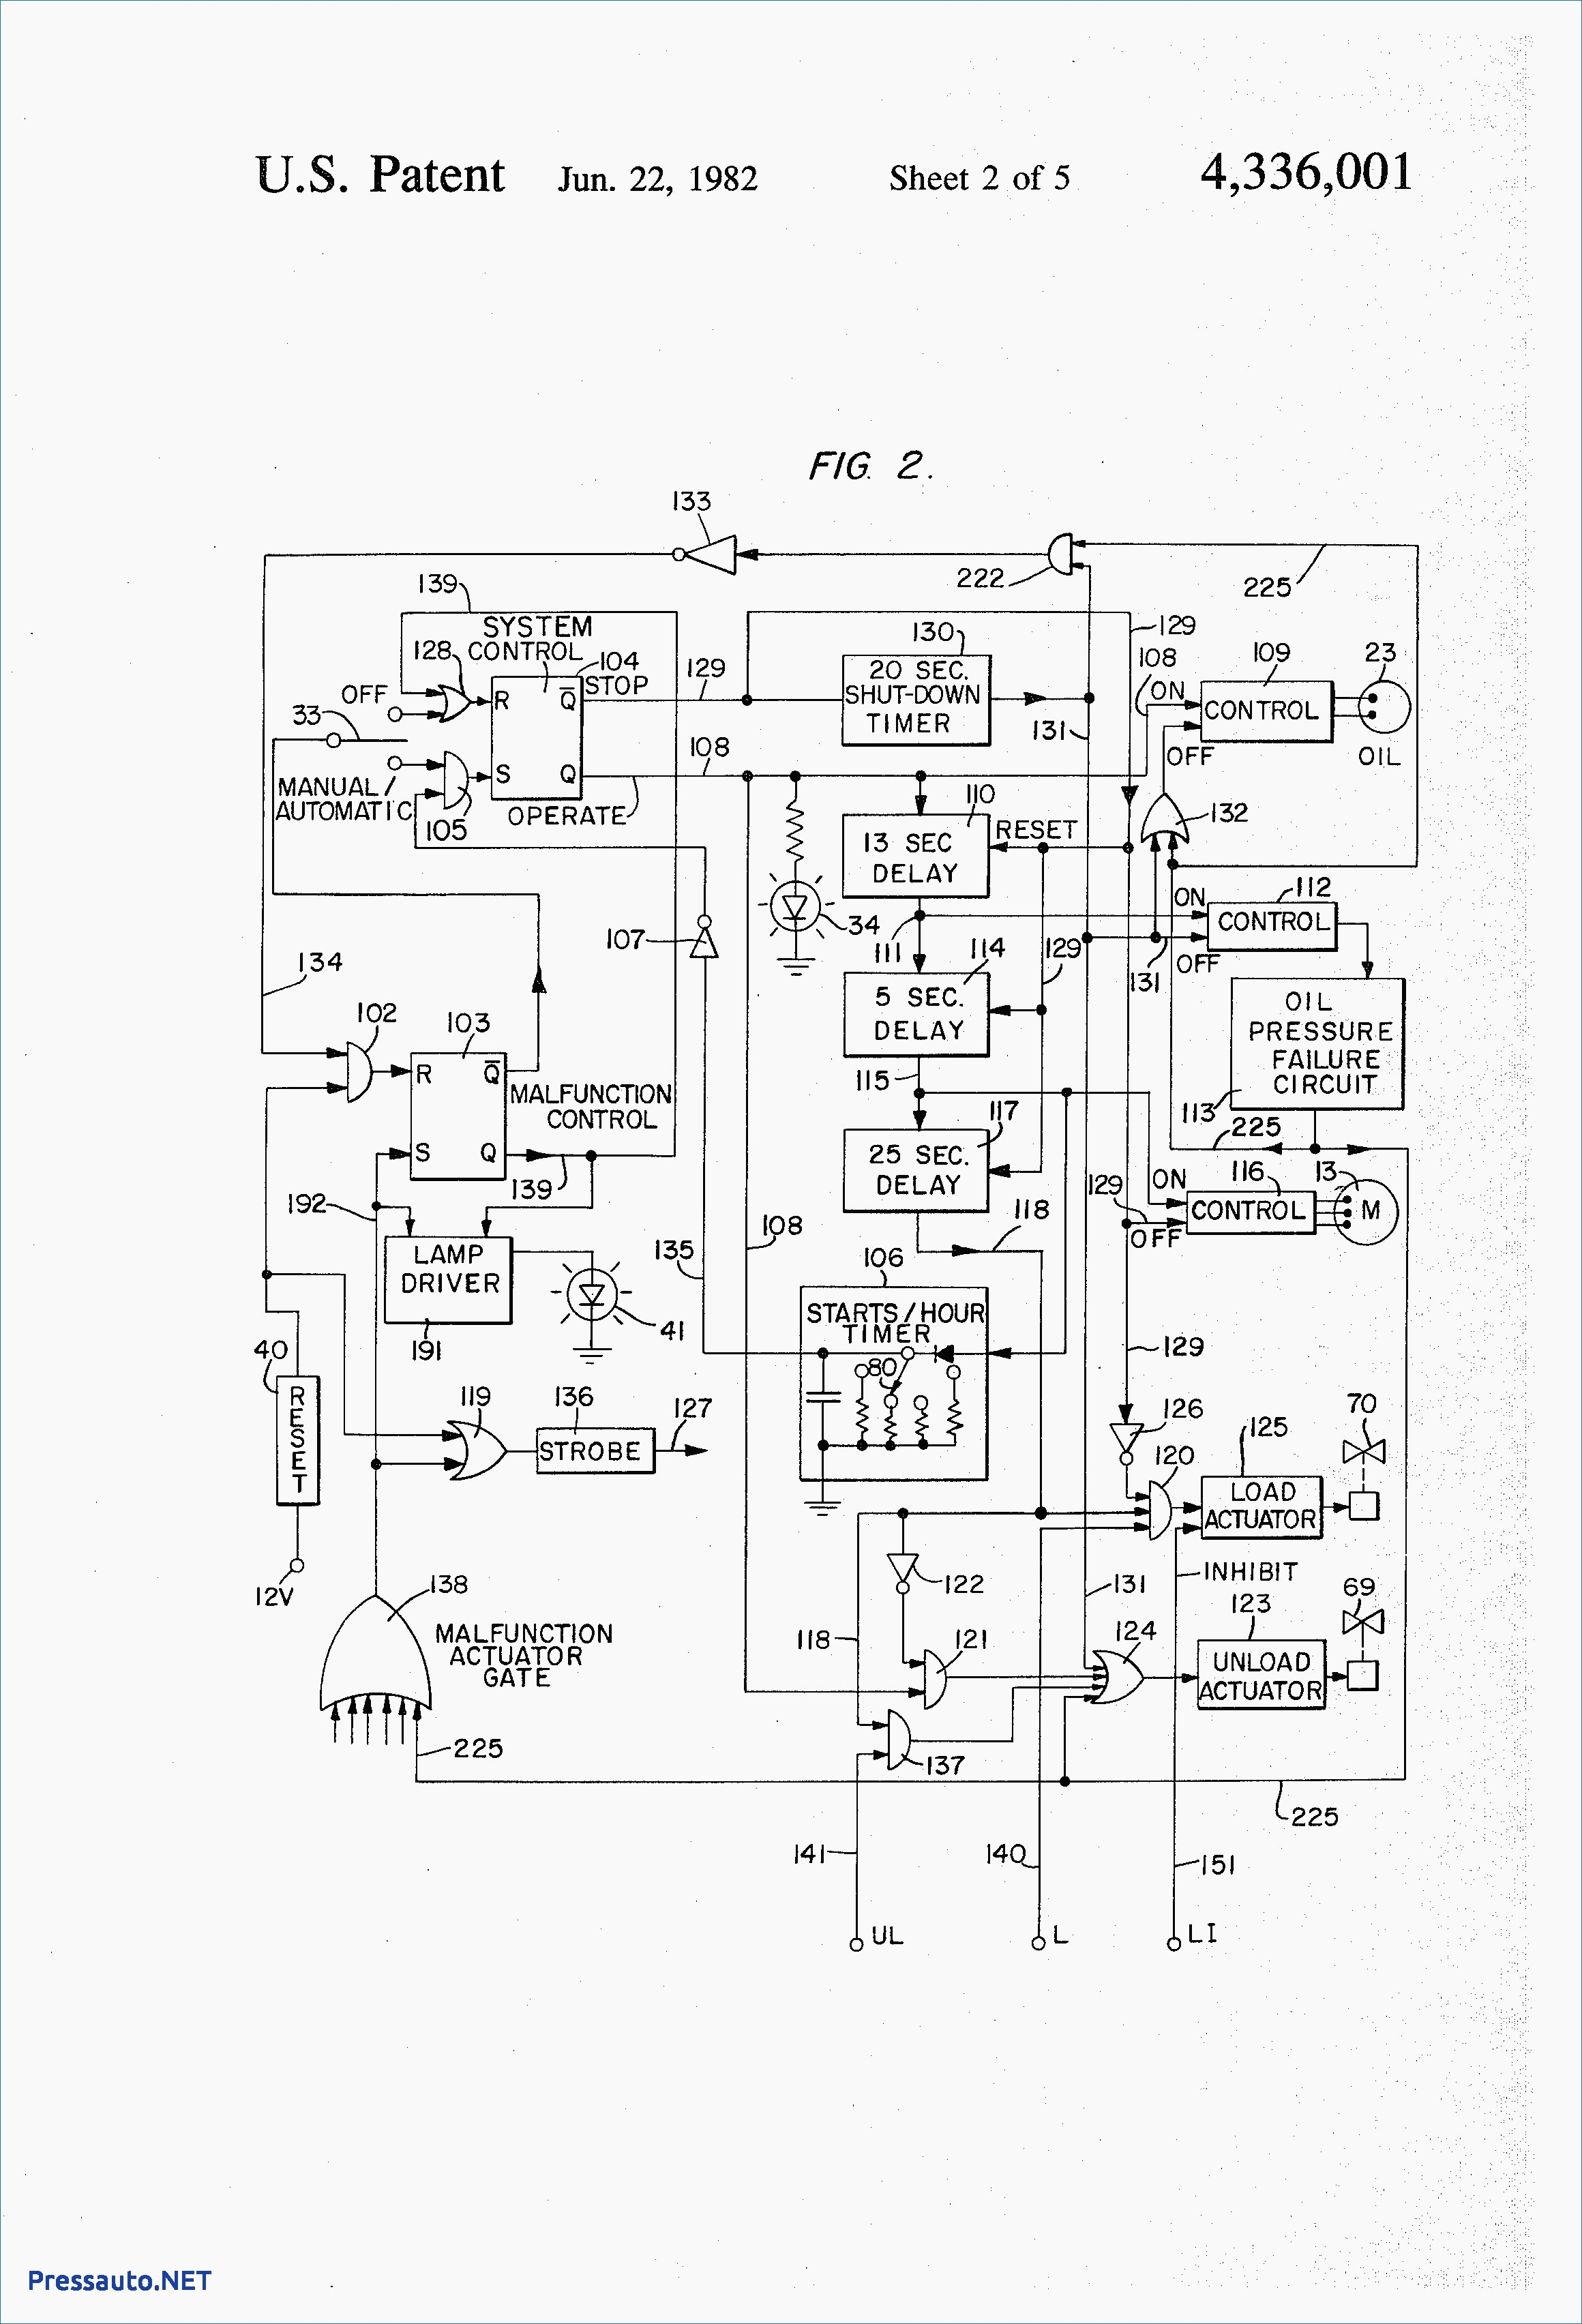 ingersoll rand t30 wiring diagram Download-ingersoll rand roller riding wiring schematic wire center u2022 rh koloewrty co Ingersoll Rand pressor Parts Diagram A Diagram for Ingersoll Rand 185 16-b